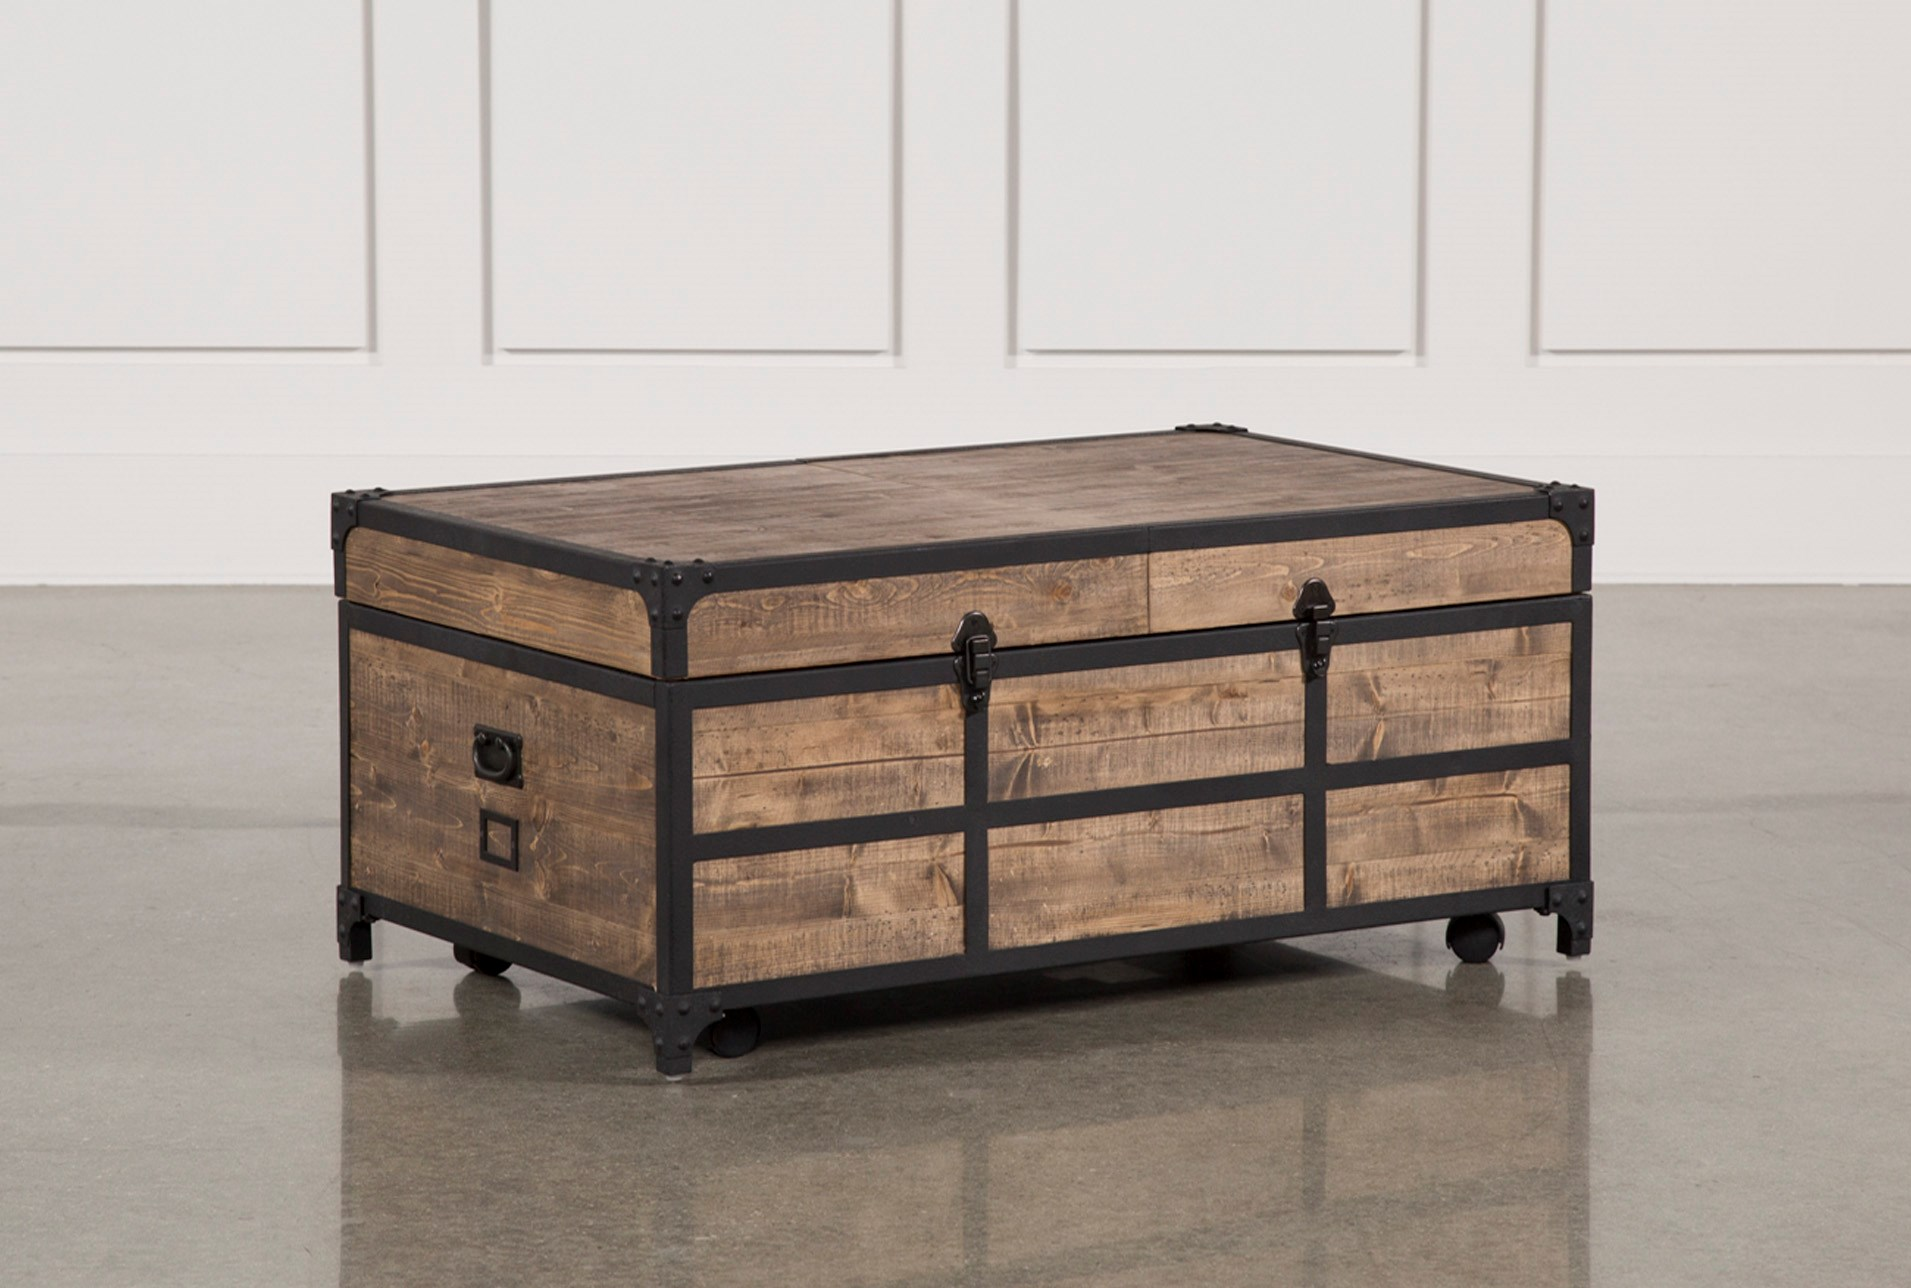 Cody Expandable Coffee Table Qty 1 Has Been Successfully Added To Your Cart